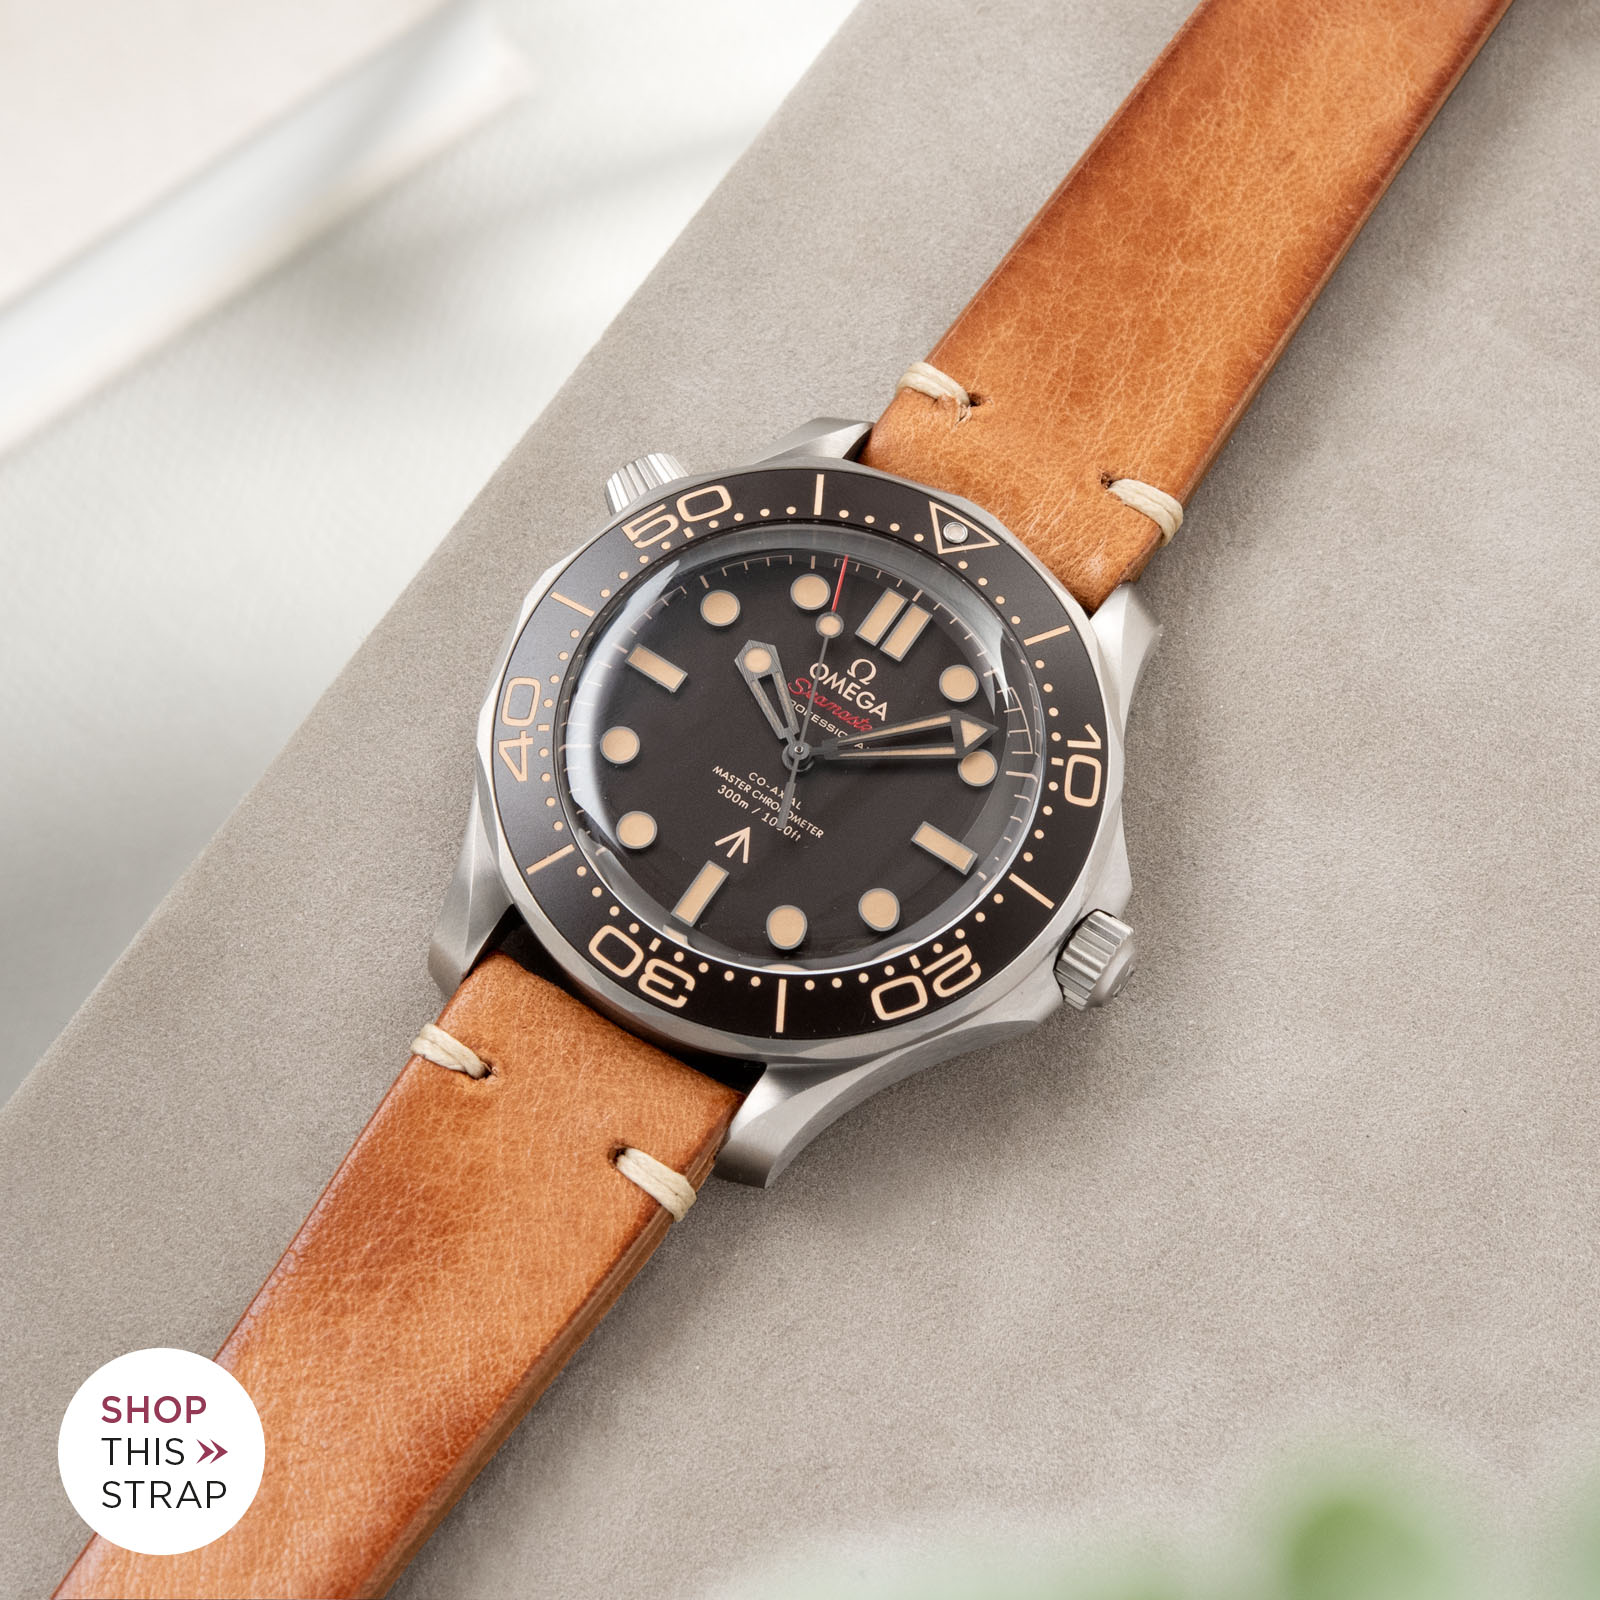 Bulang and Sons_Strapguide_Omega Seamaster_Caramel Brown Leather Watch Strap